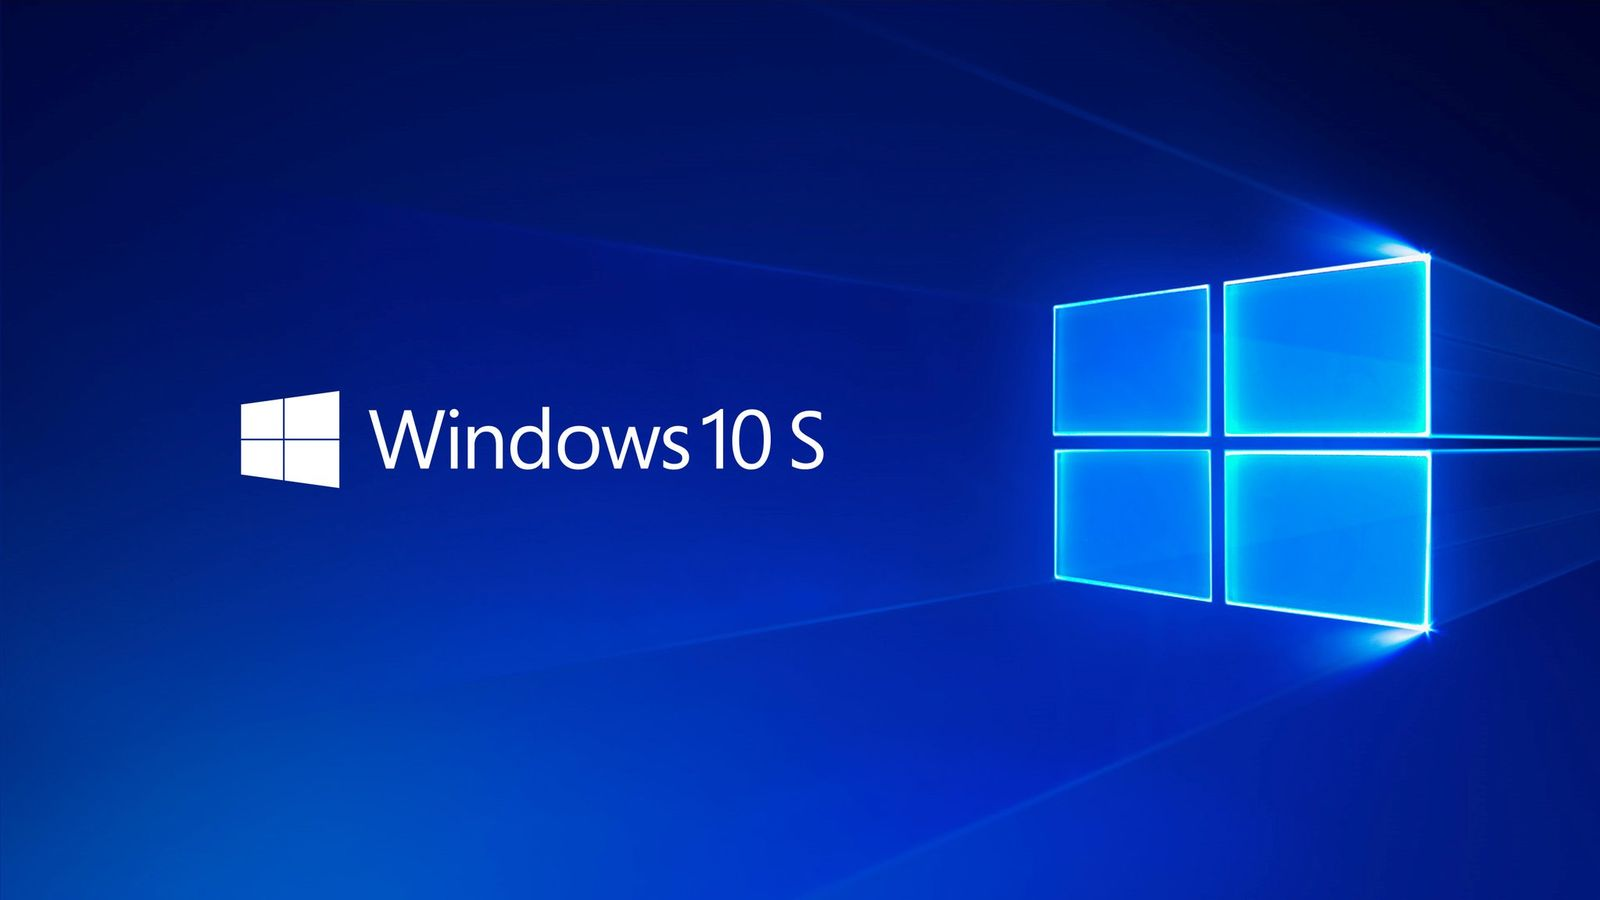 Windows 10 S Is The Latest Version Of Windows On The